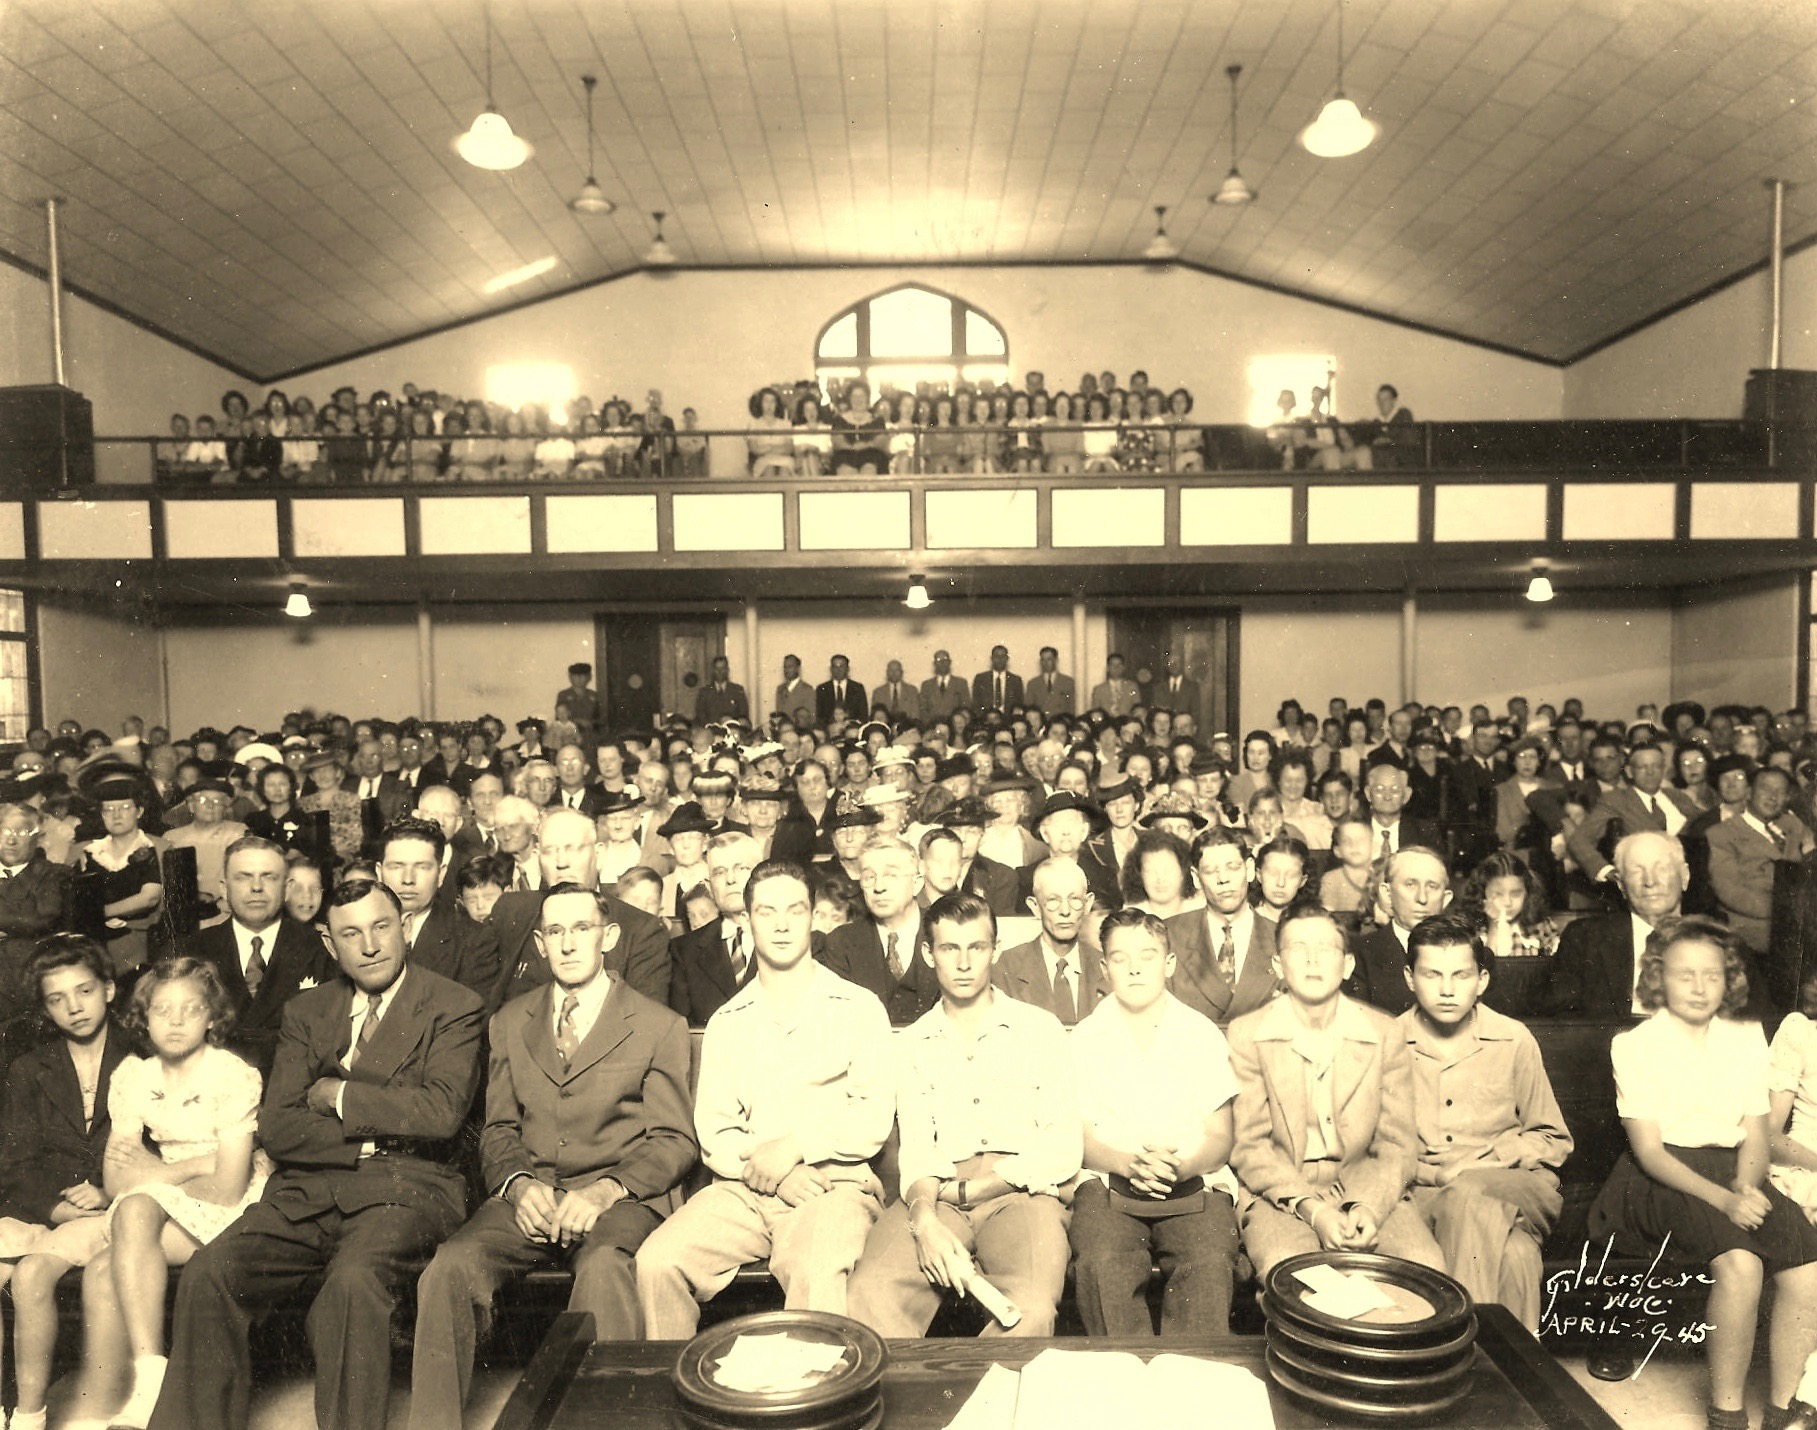 North Waco Baptist Church, April 29, 1945